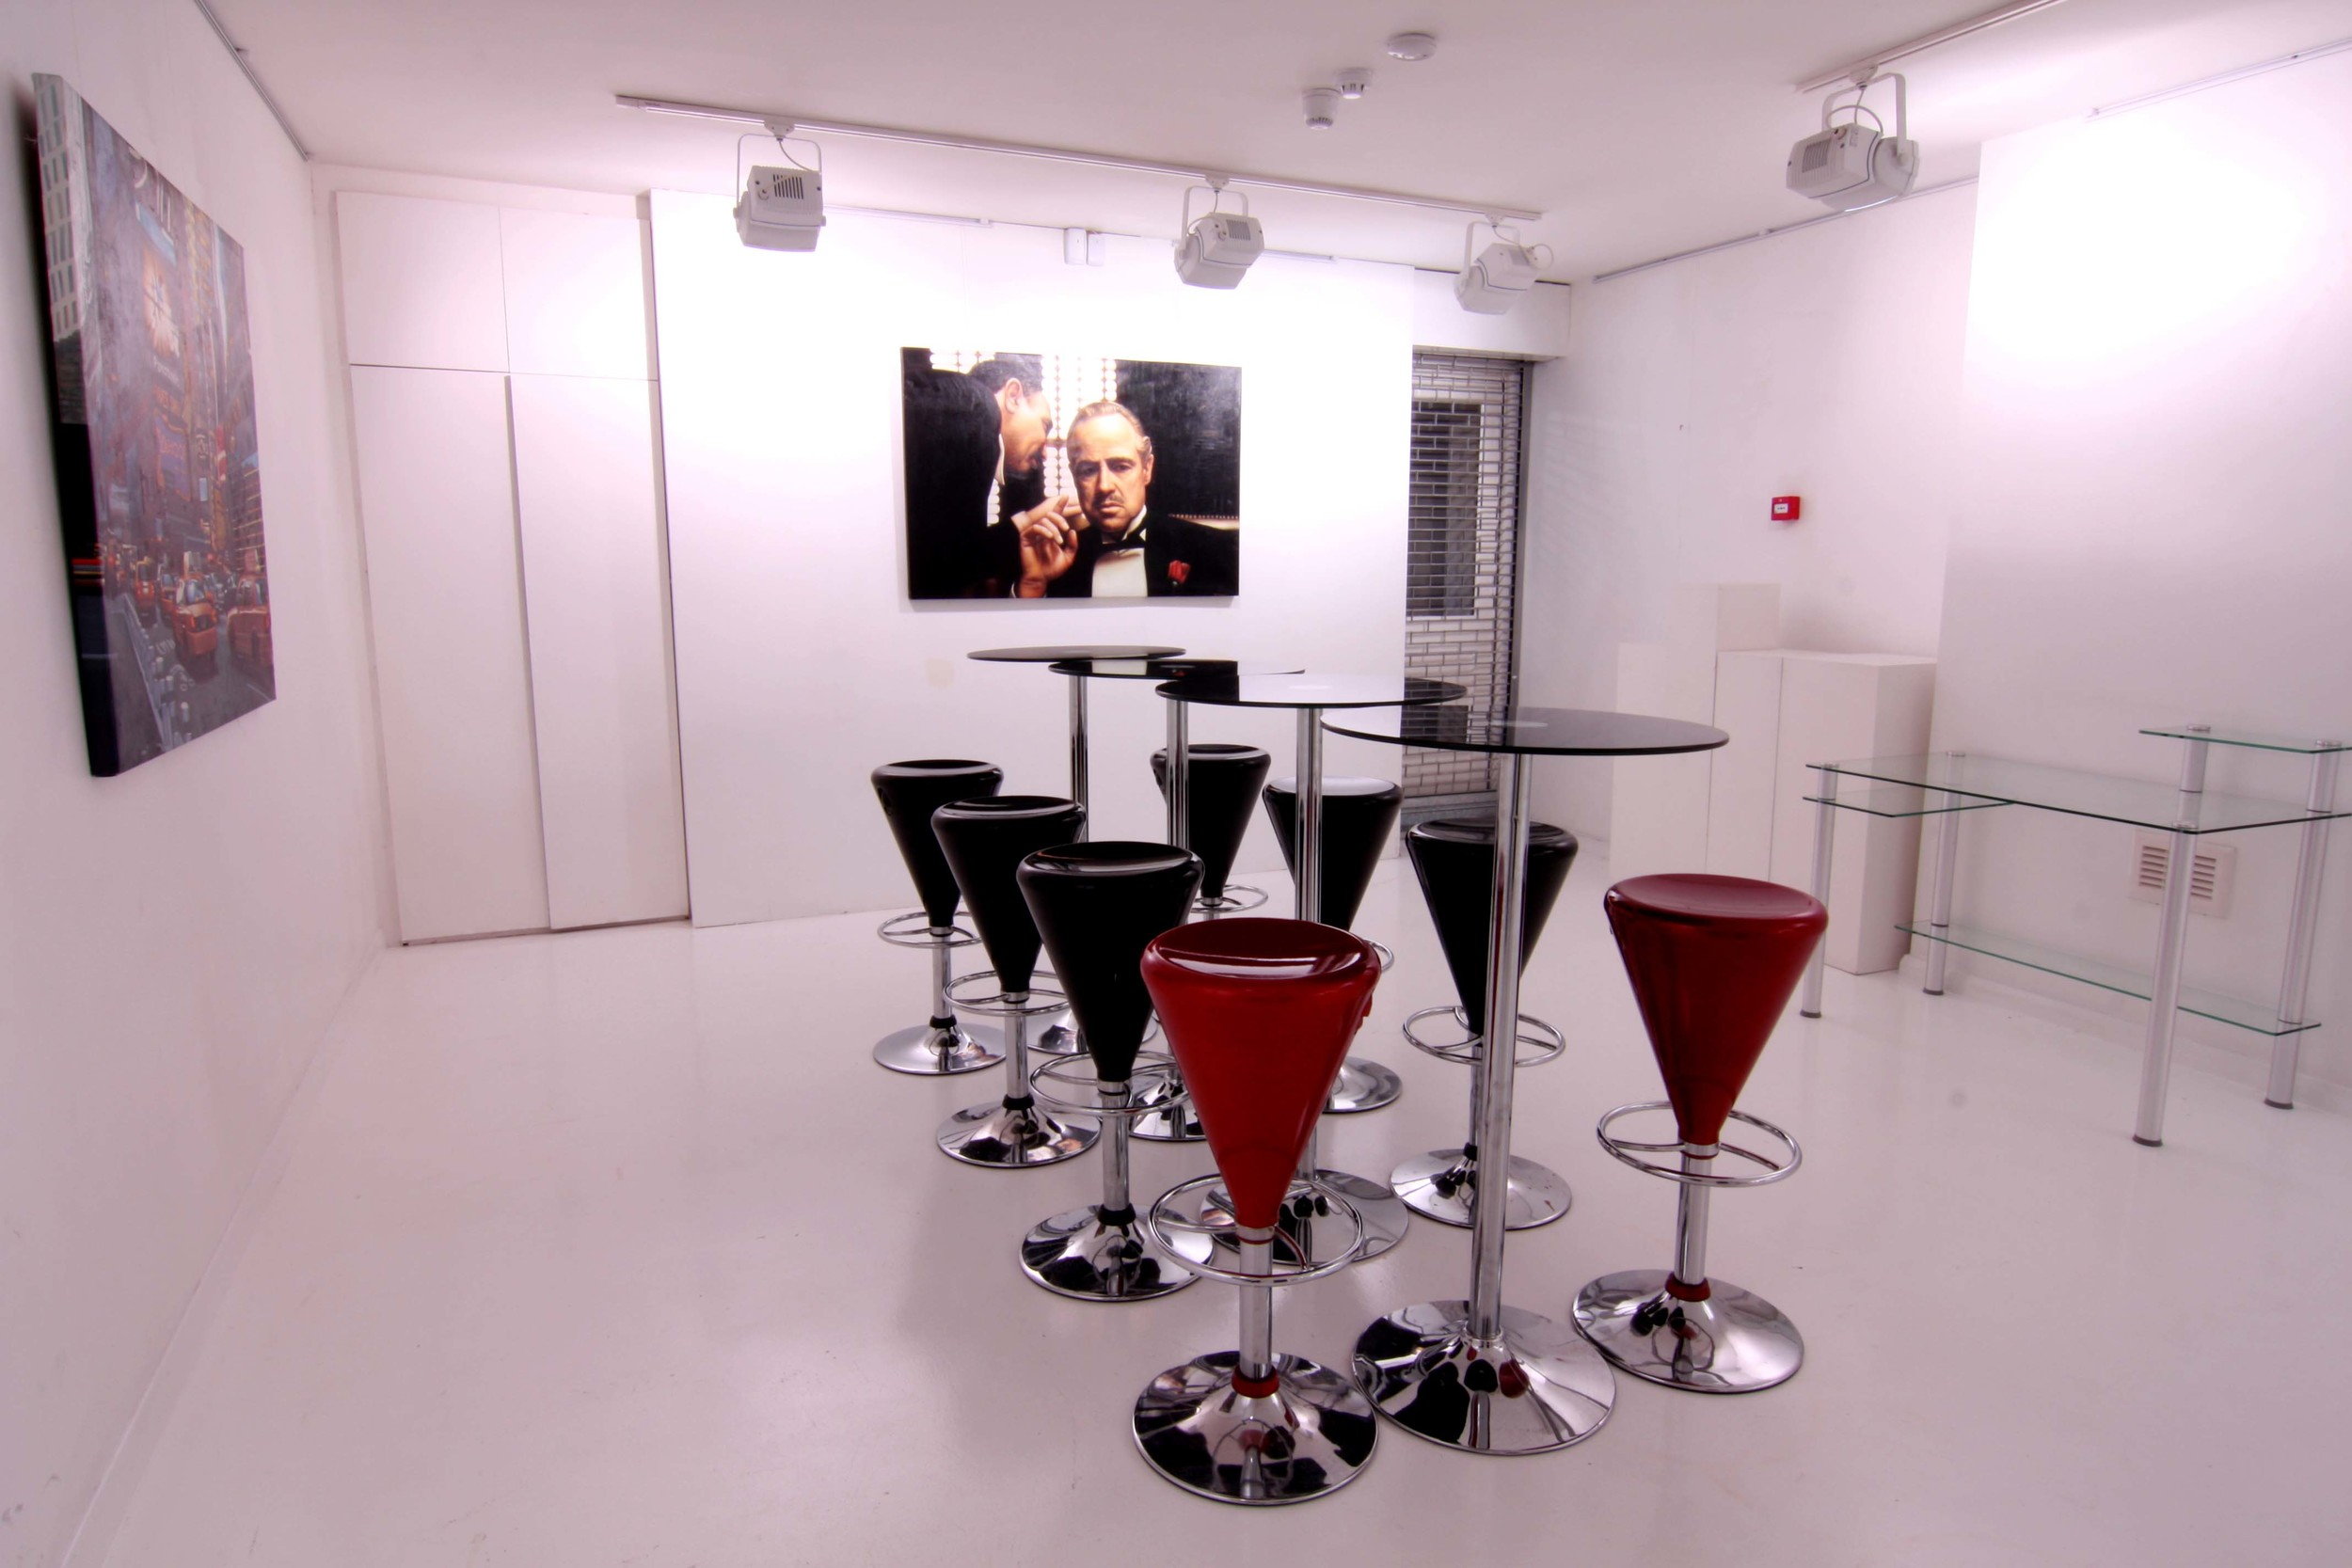 gallery pictures london 004.jpg